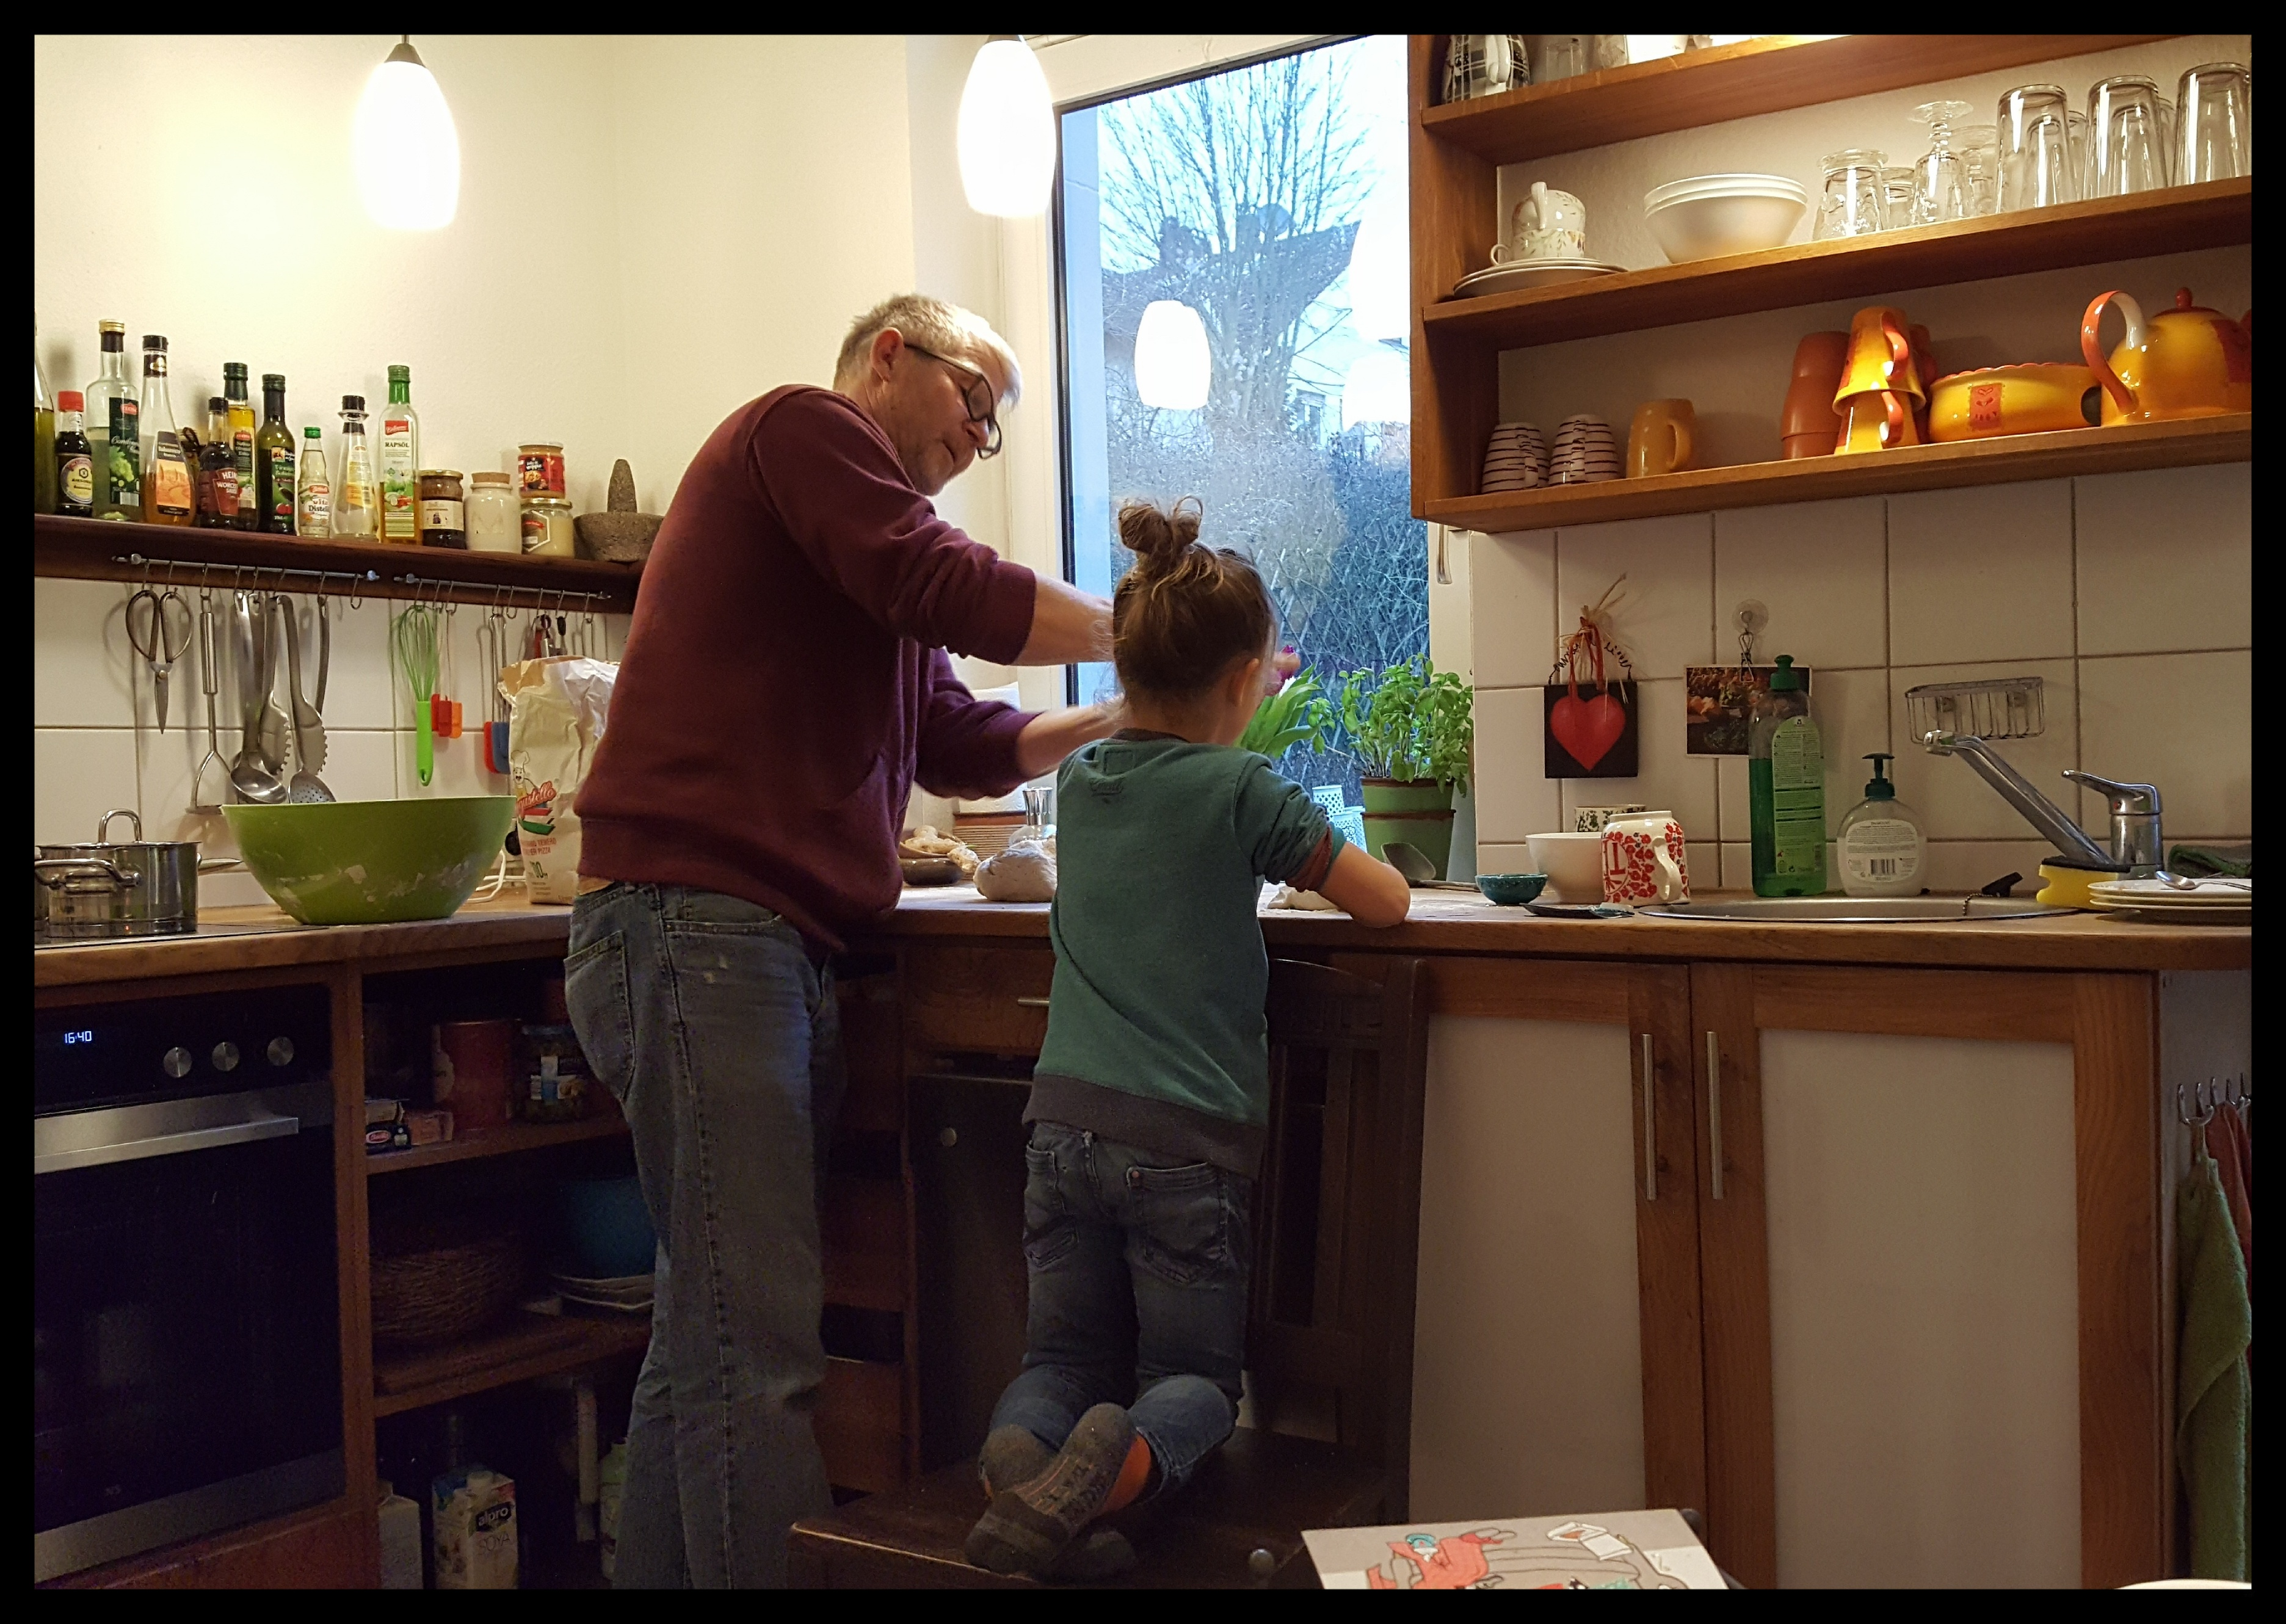 Burkhard's neighbor friend gets a lesson in pizza dough making before the party. Photo by Dragonfly Leathrum